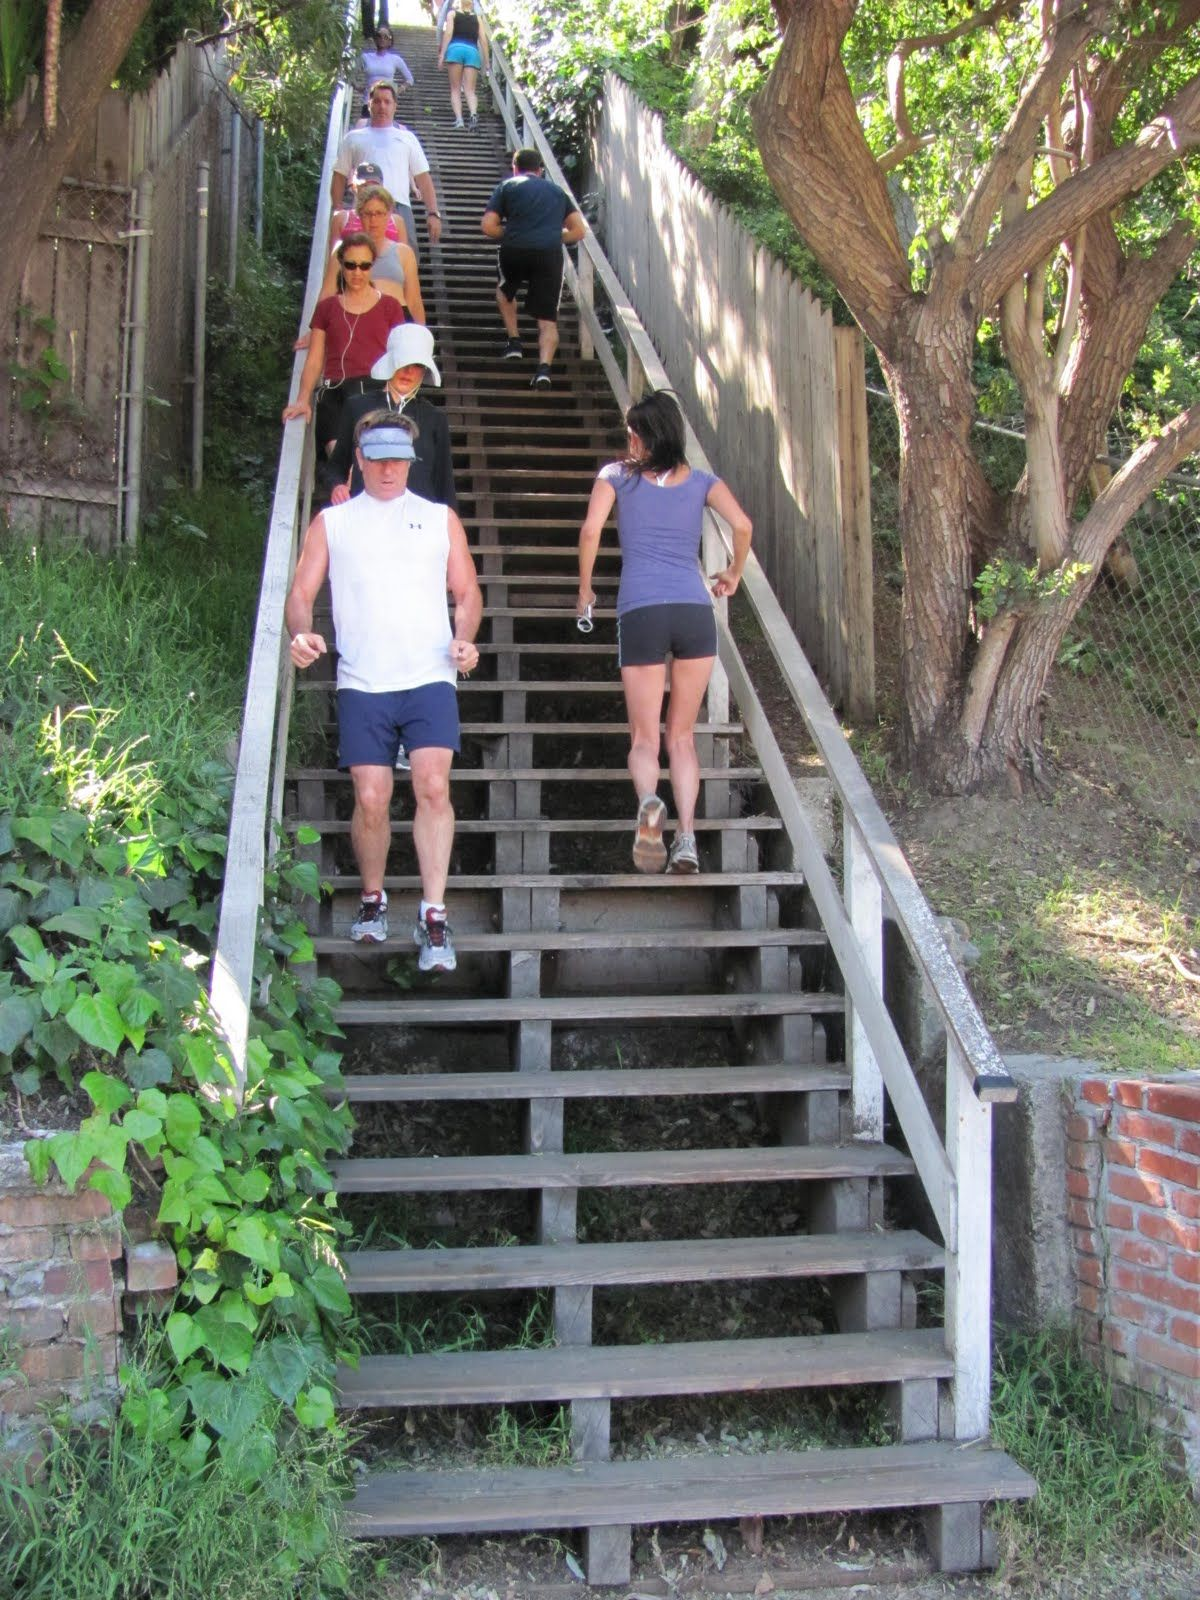 Stair Workout Stairs Workout Hiit Benefits Santa Monica Stairs